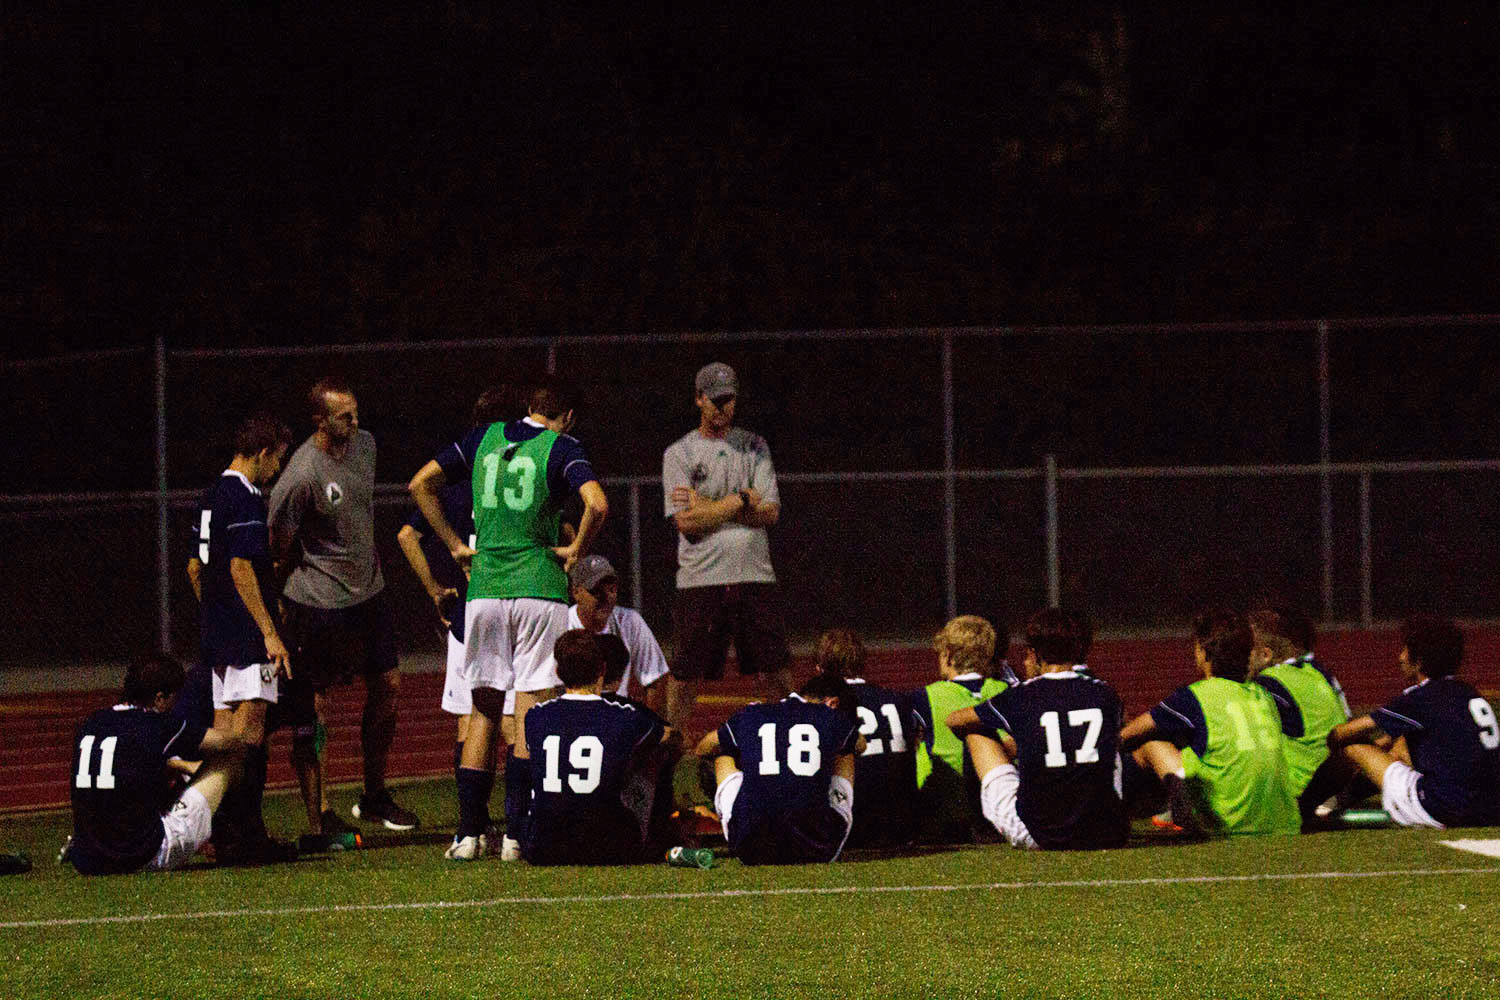 The team huddles together during halftime to discuss strategies for the second half.